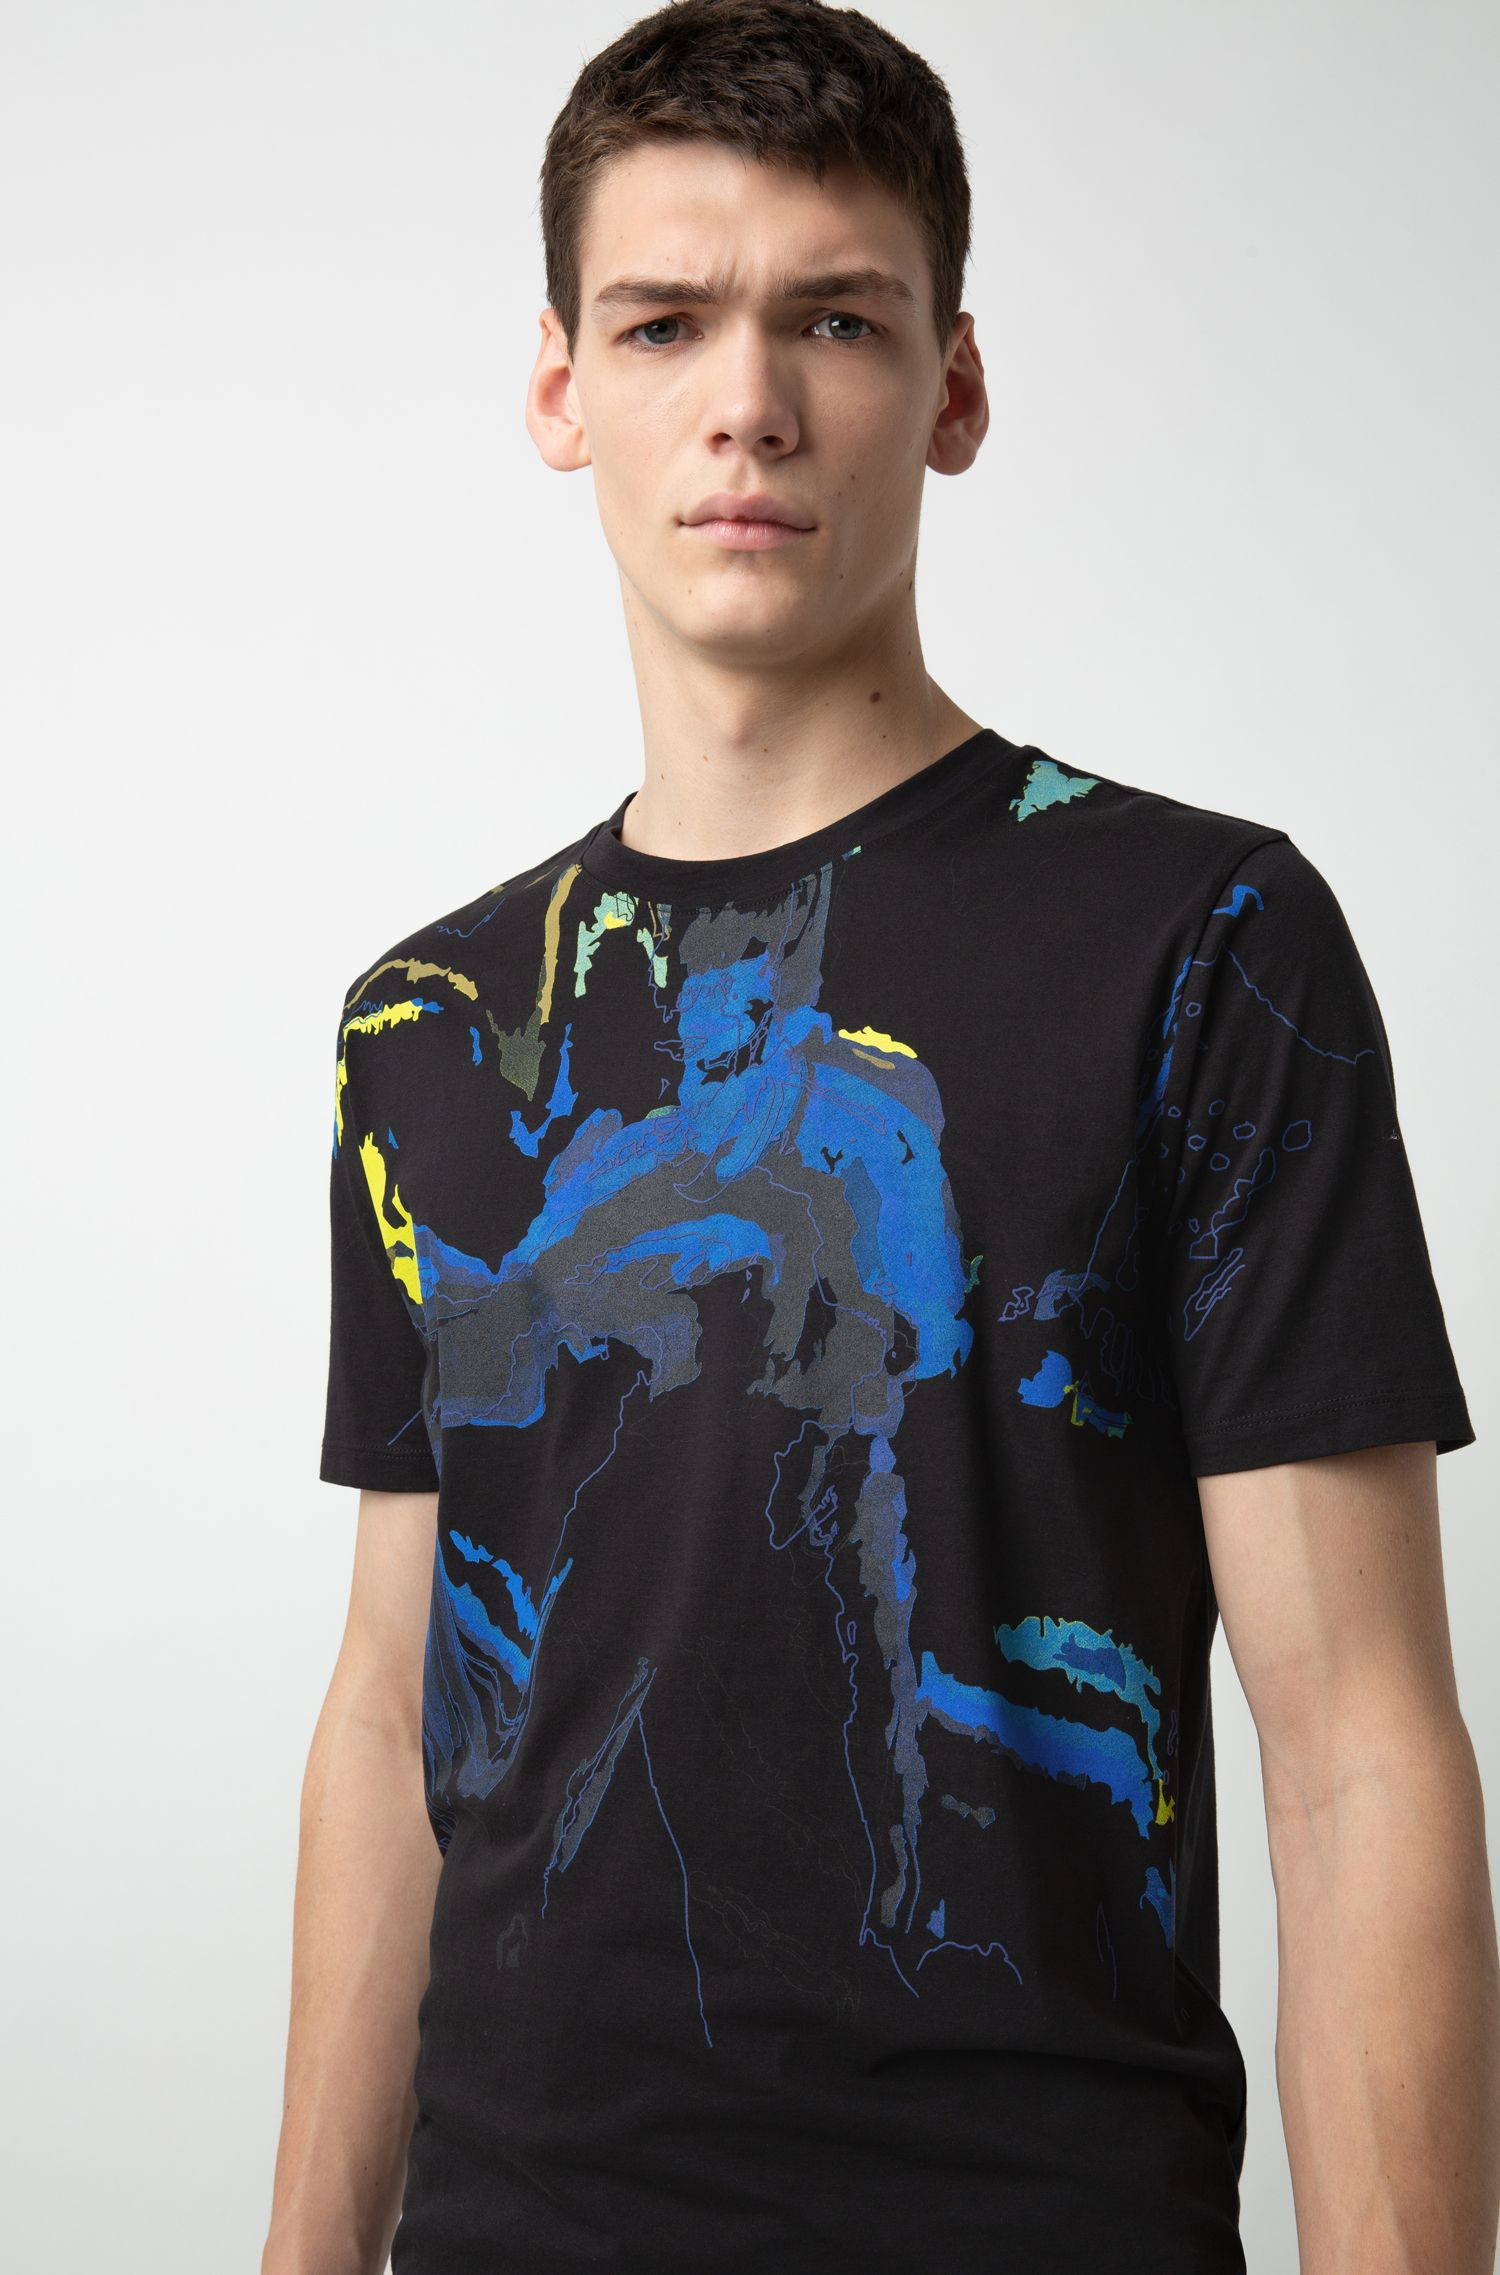 Regular-fit T-shirt in pure cotton with colourful artwork, Patterned